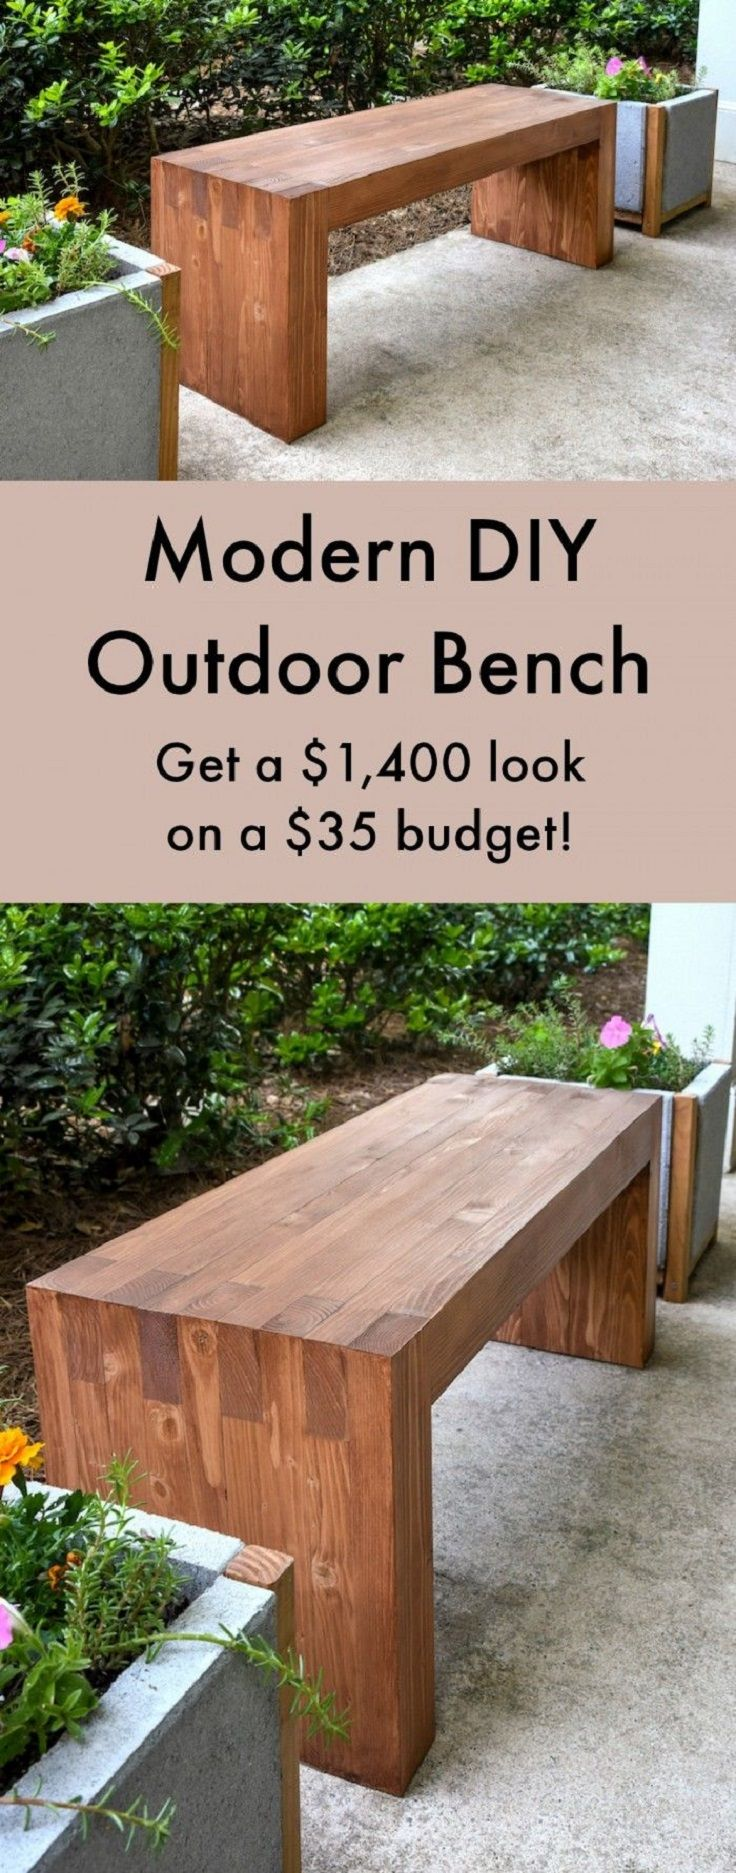 Solid roof pergola plans in addition park bench picnic table moreover - Modern Diy Outdoor Bench 15 Practical Diy Woodworking Ideas For Your Home